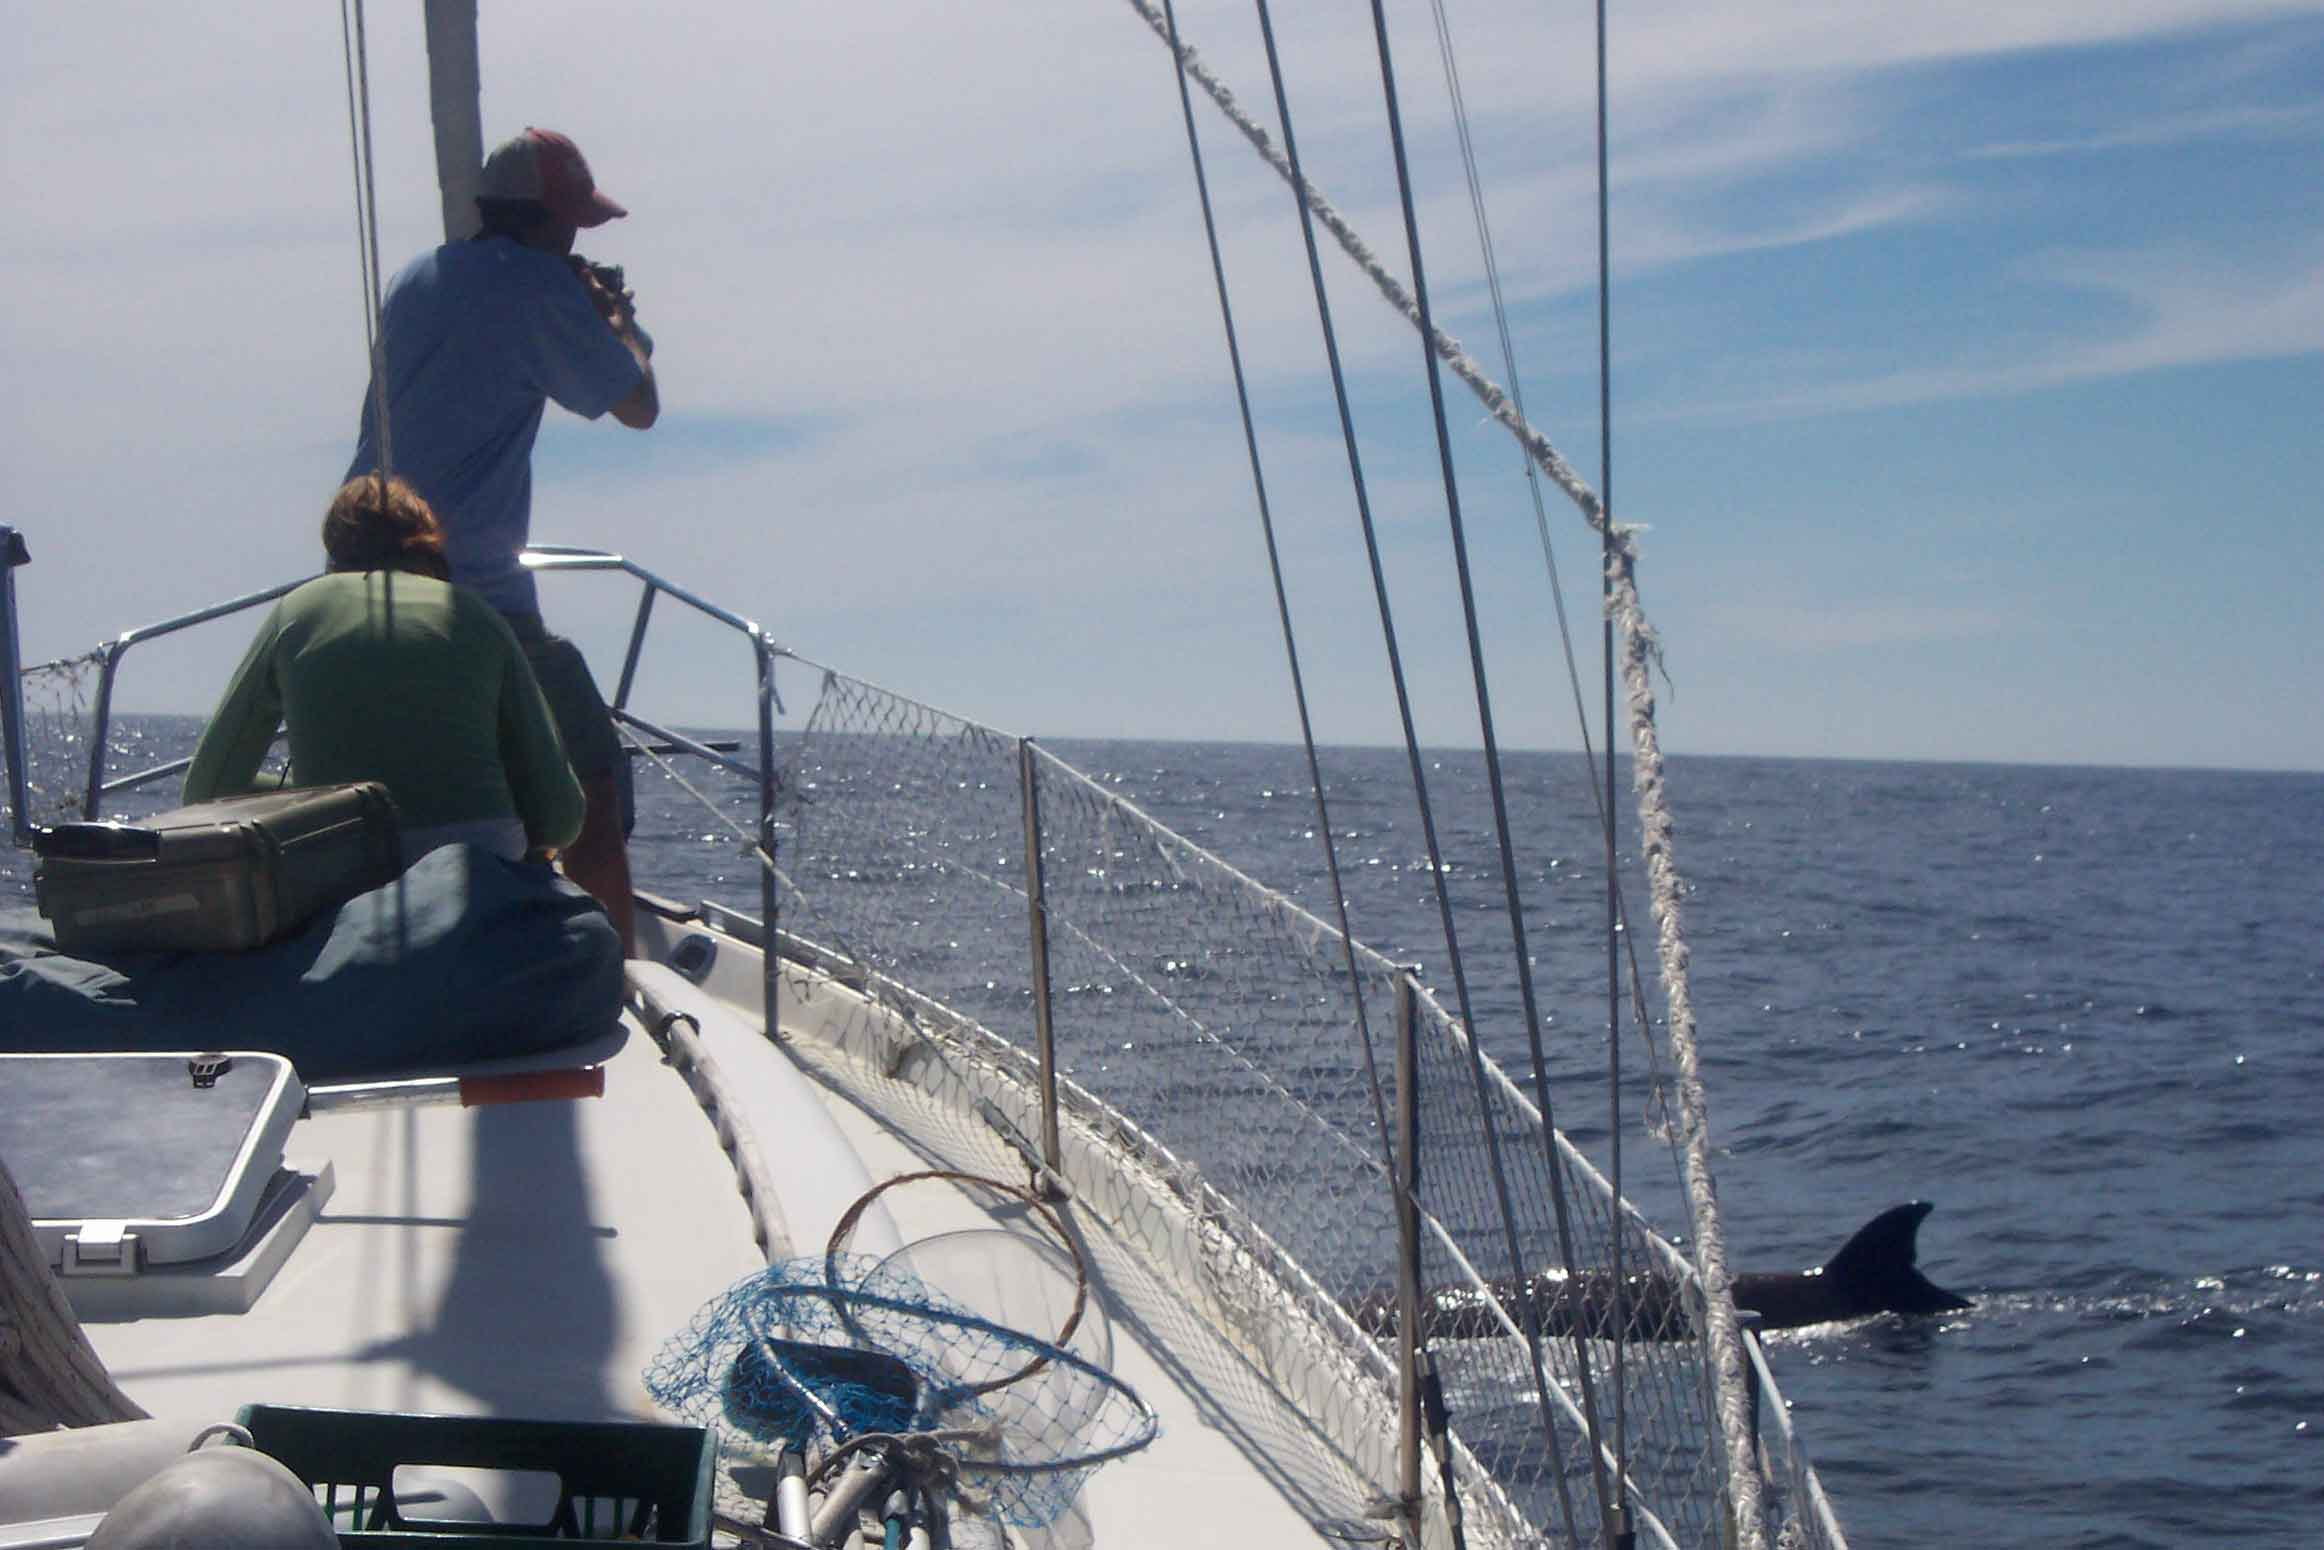 Researcher photographing bottlenose whales from a sailing vessel. Photo Credit: Hilary Moors-Murphy